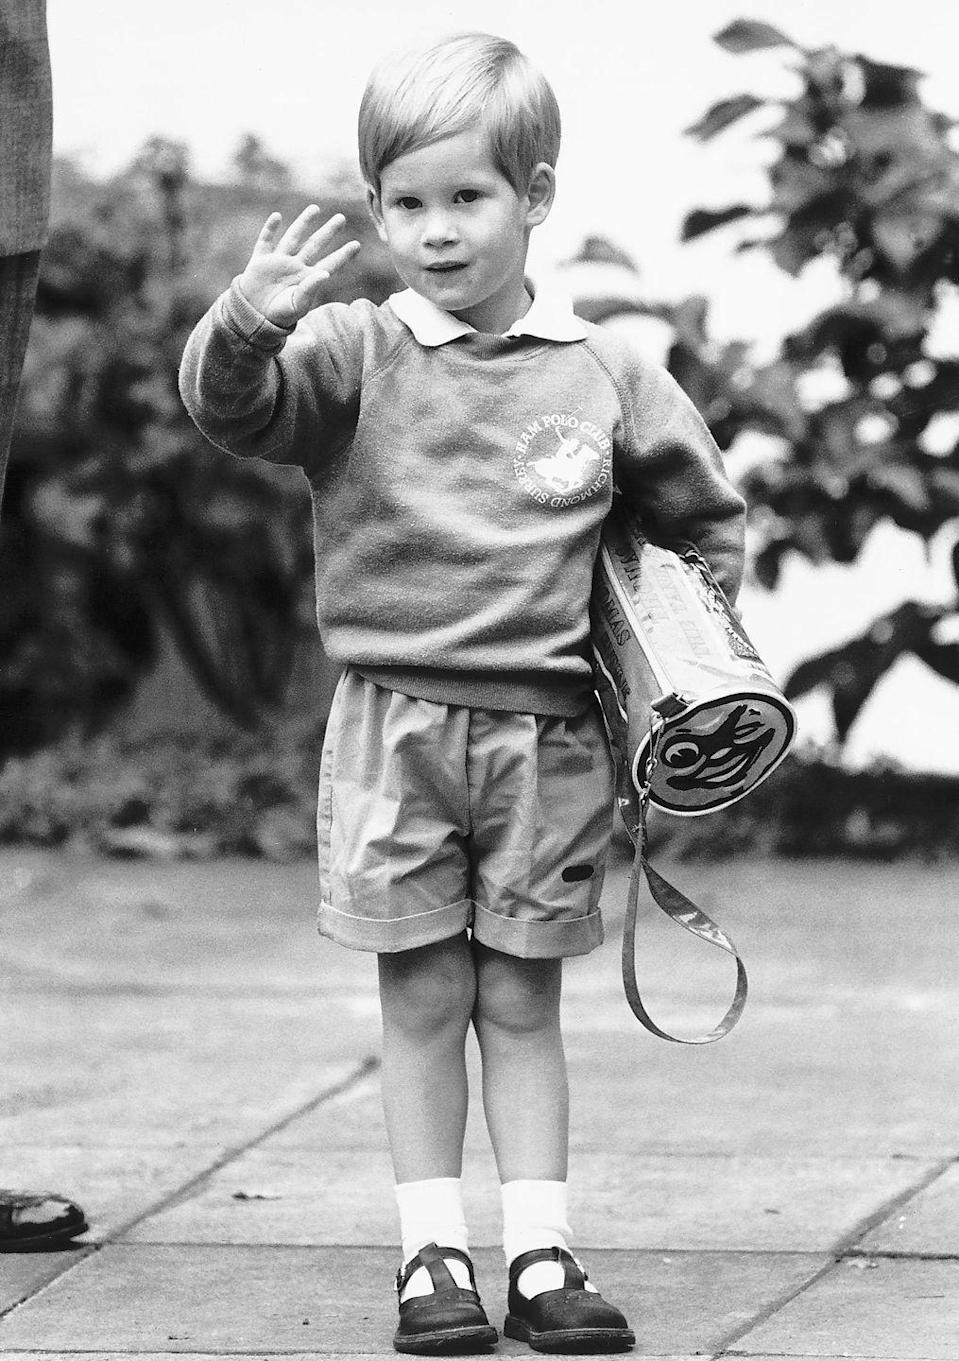 <p>Prince Harry followed in the footsteps of his brother and sported his own pair of baggy shorts on his way to nursery school in 1987. Please note his Thomas the Tank Engine backpack.</p>